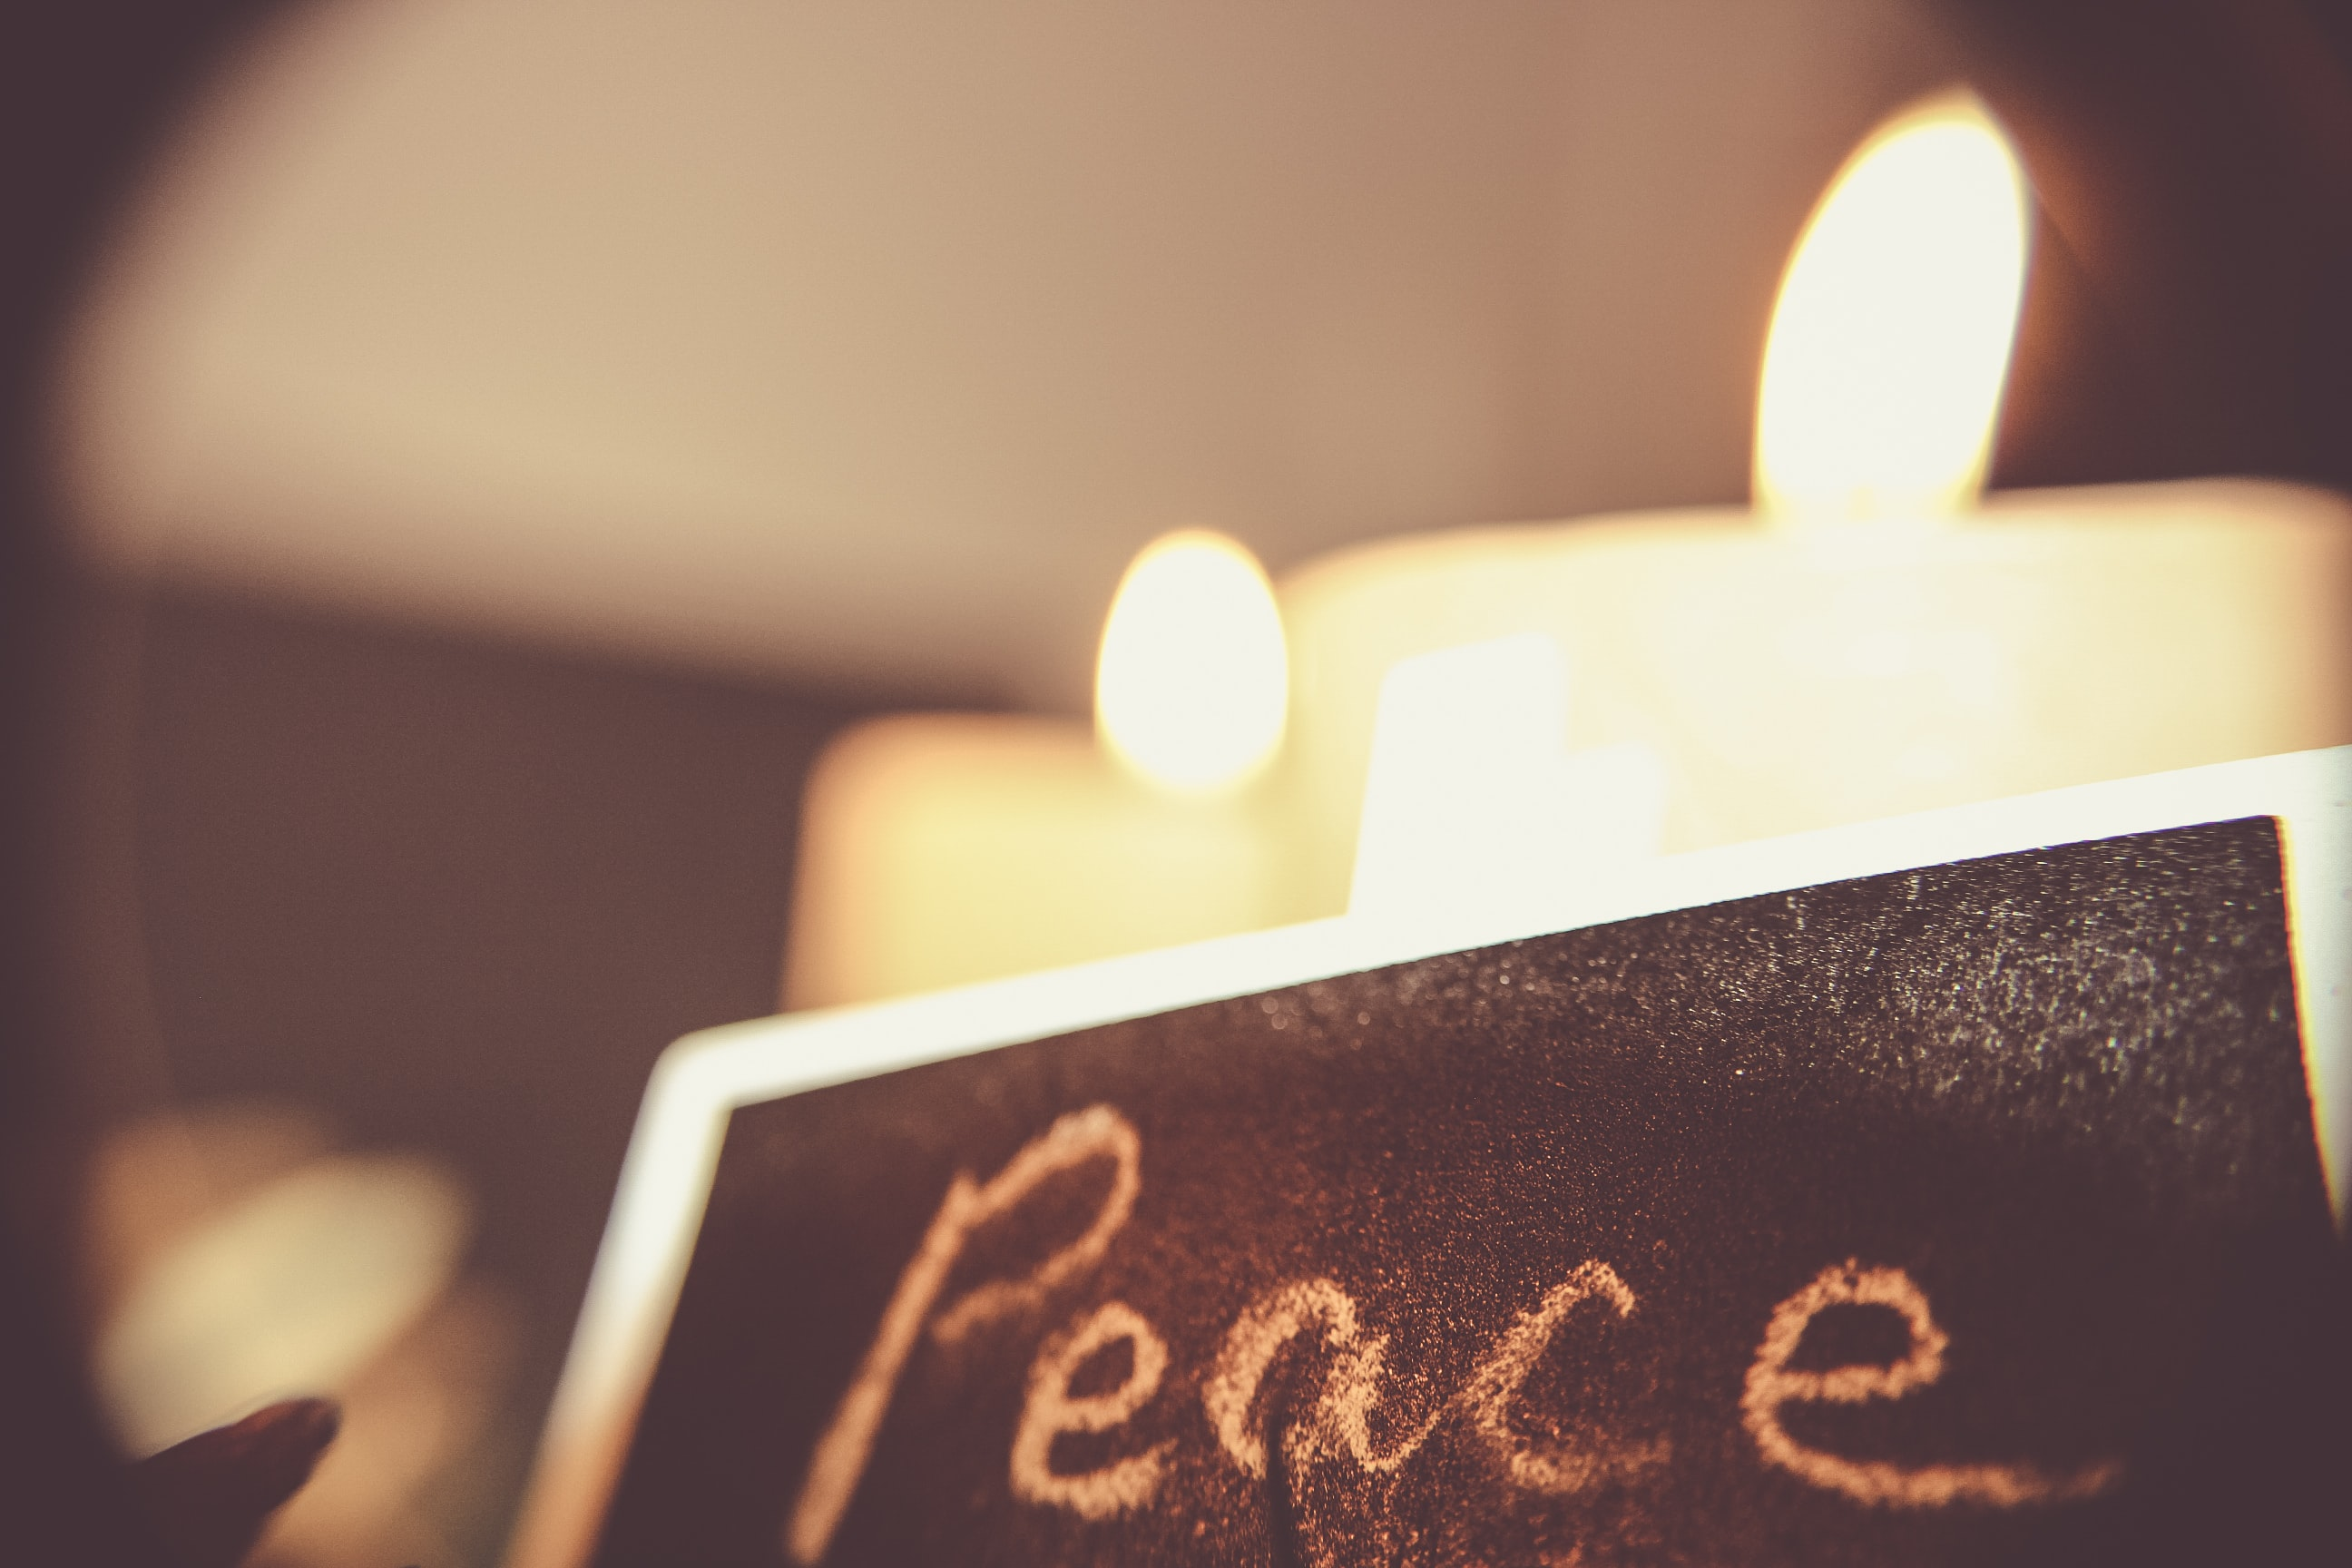 Peace, written on a black chalkboard with white chalk in front of candles.